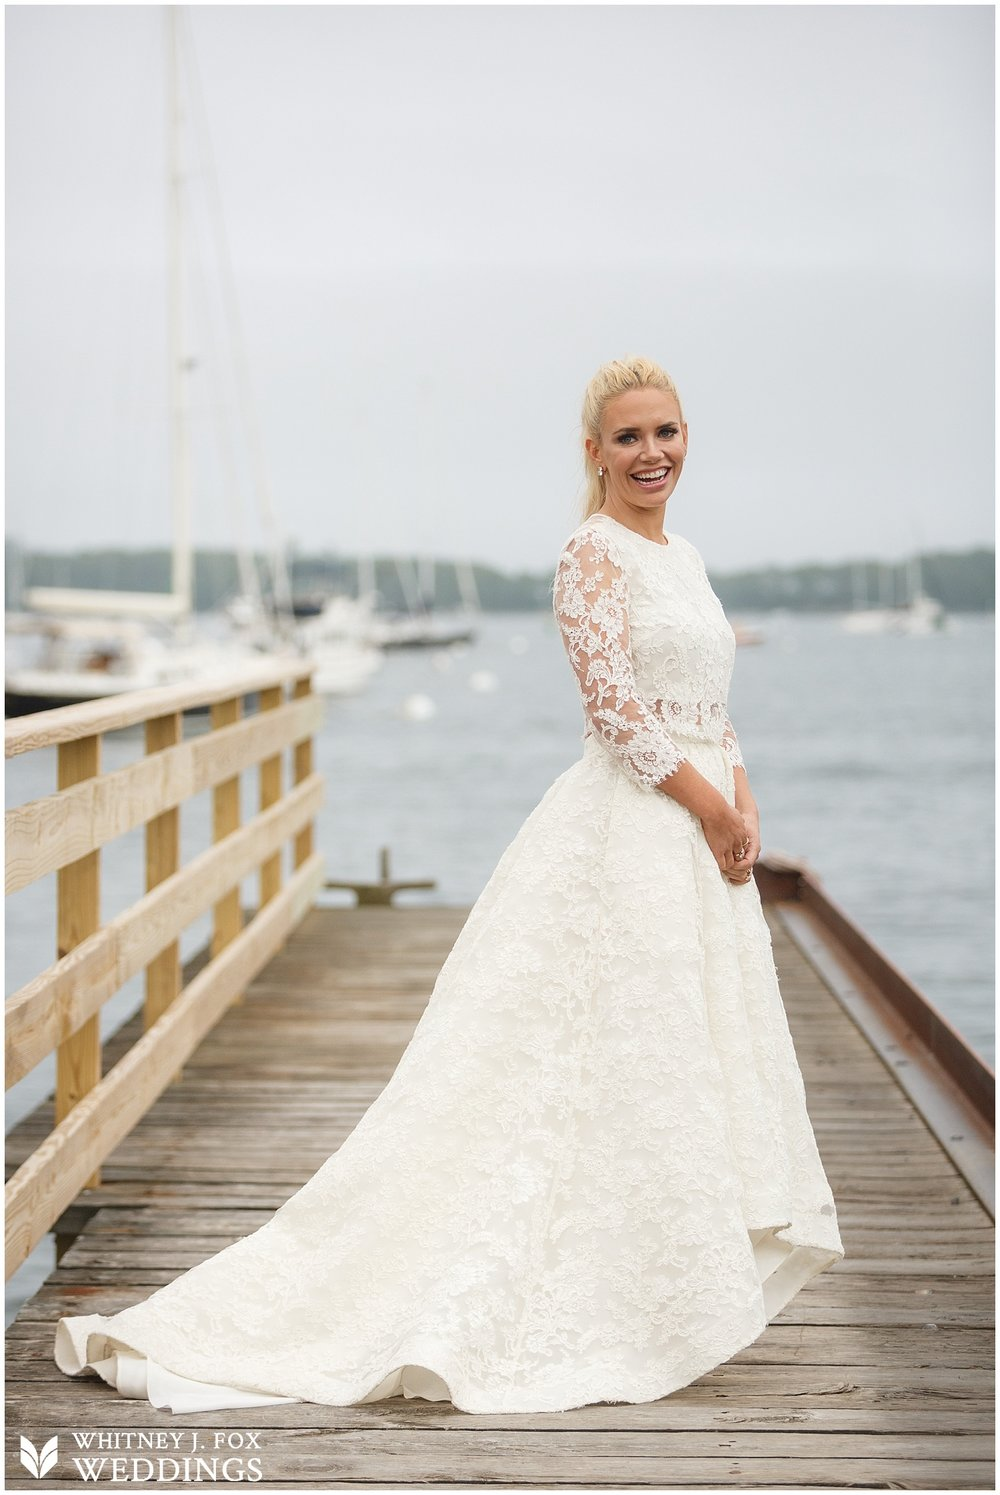 formal_seaside_summer_wedding_dockside_grill_falmouth_maine_photographer_whitney_j_fox_weddings_53.JPG